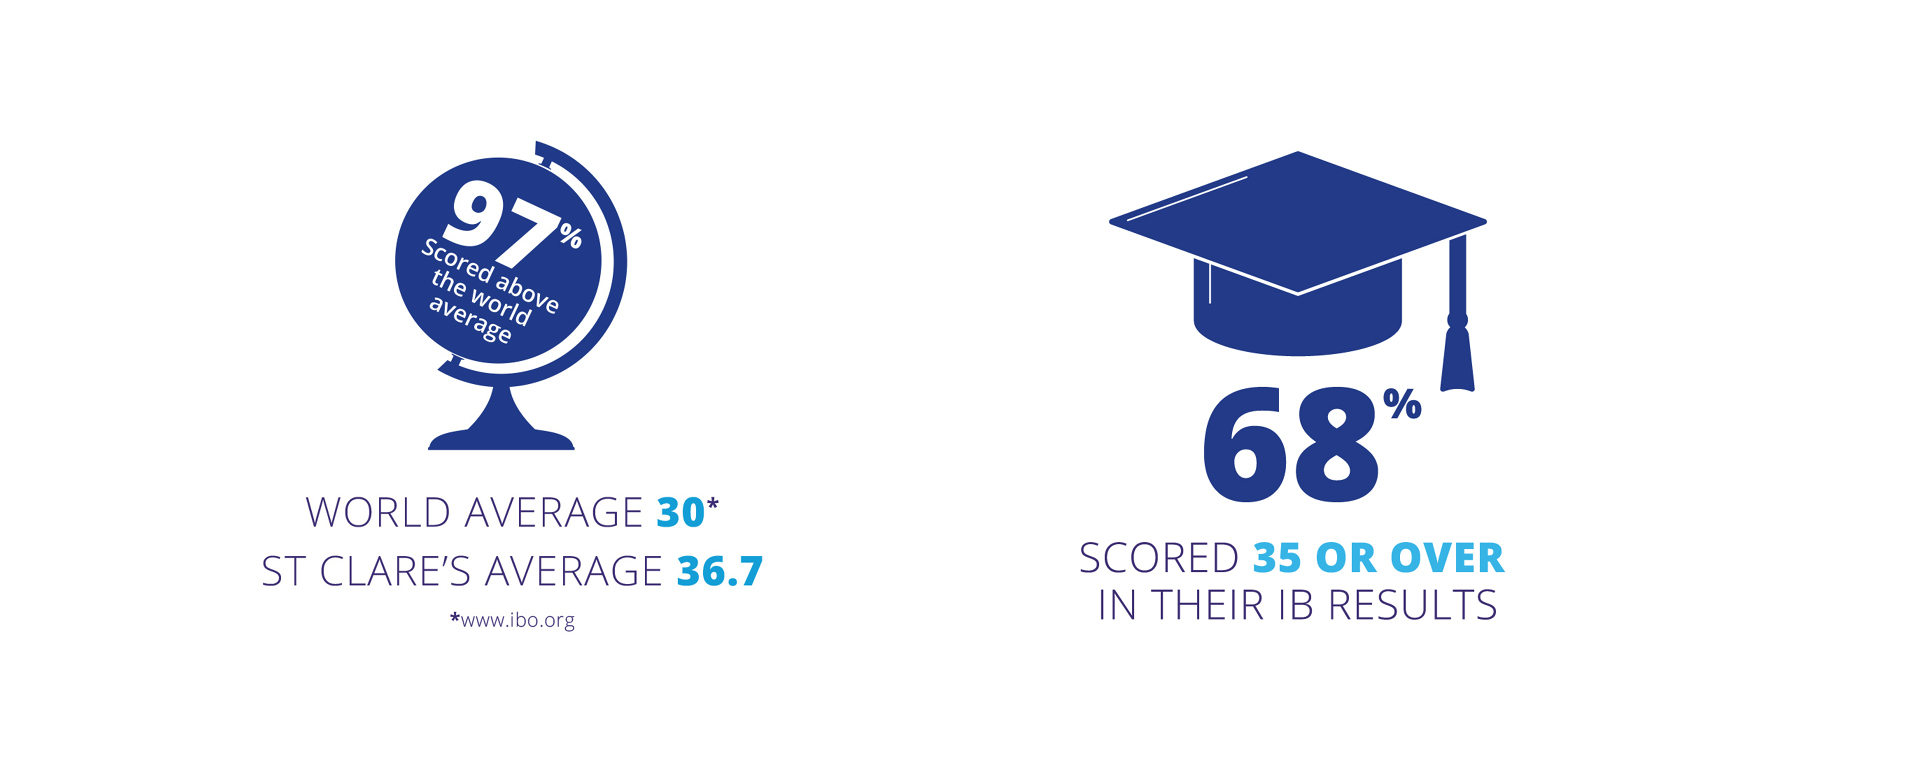 Exceptional IB Examination Results | St Clare's Oxford